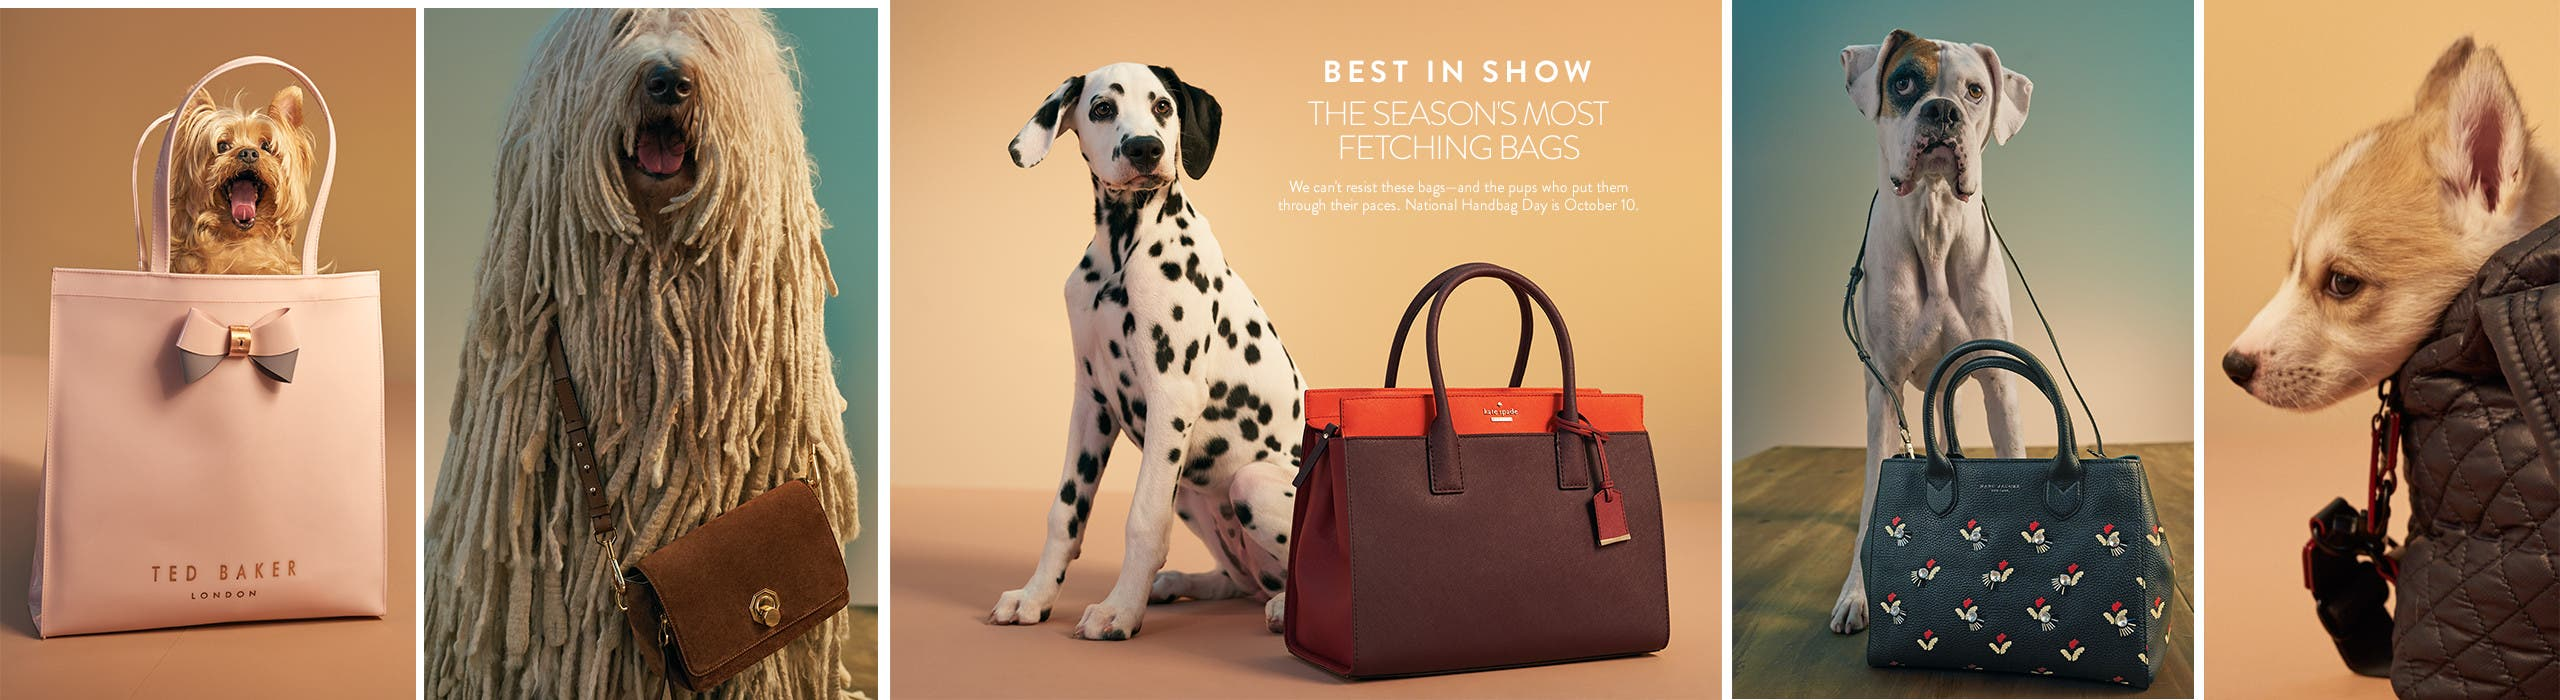 Best in show - the season's most fetching bags.